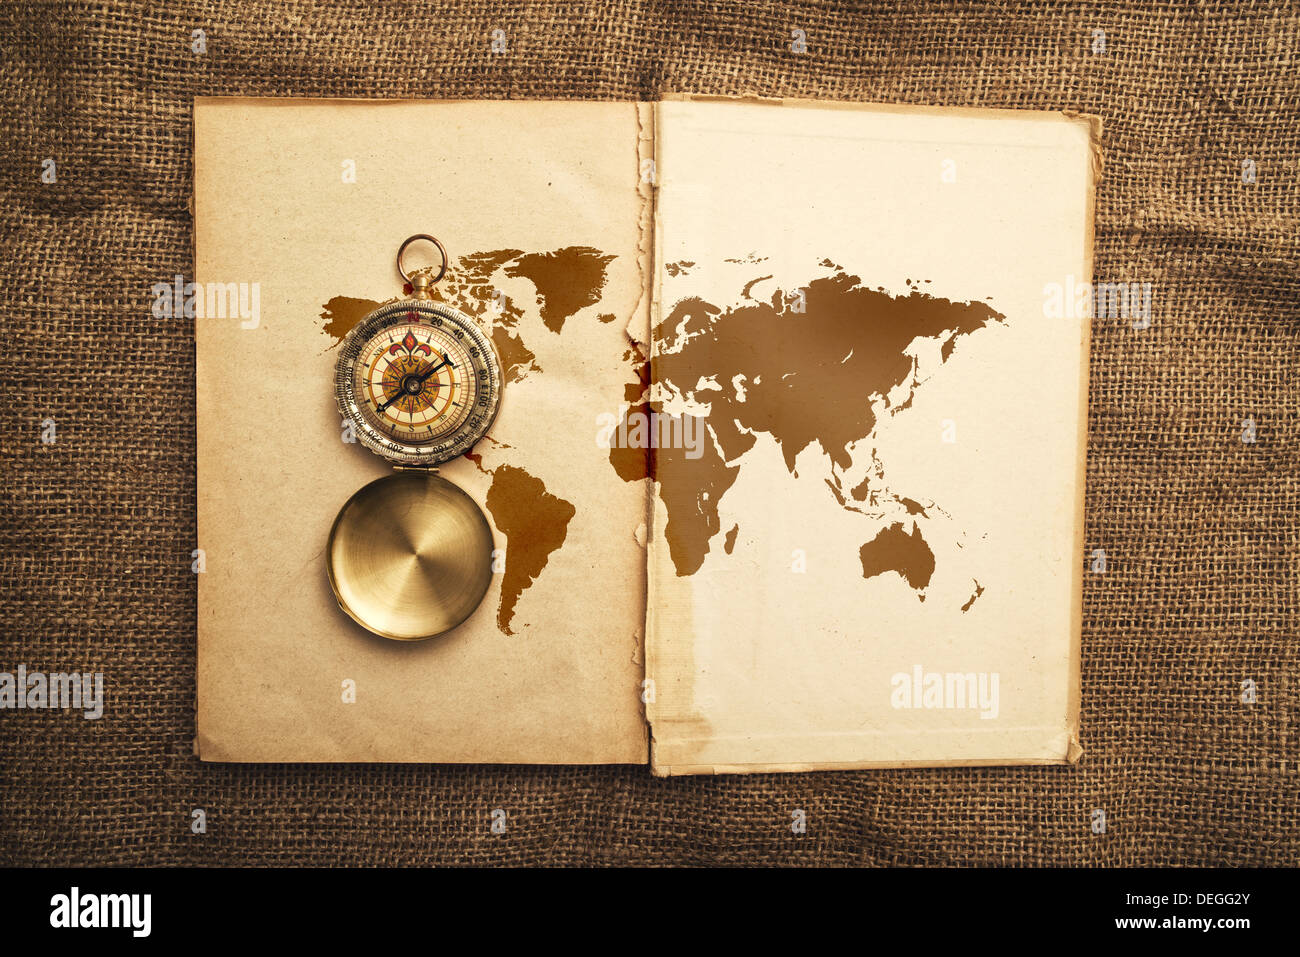 Vintage open book with old navigation compass and world map. - Stock Image